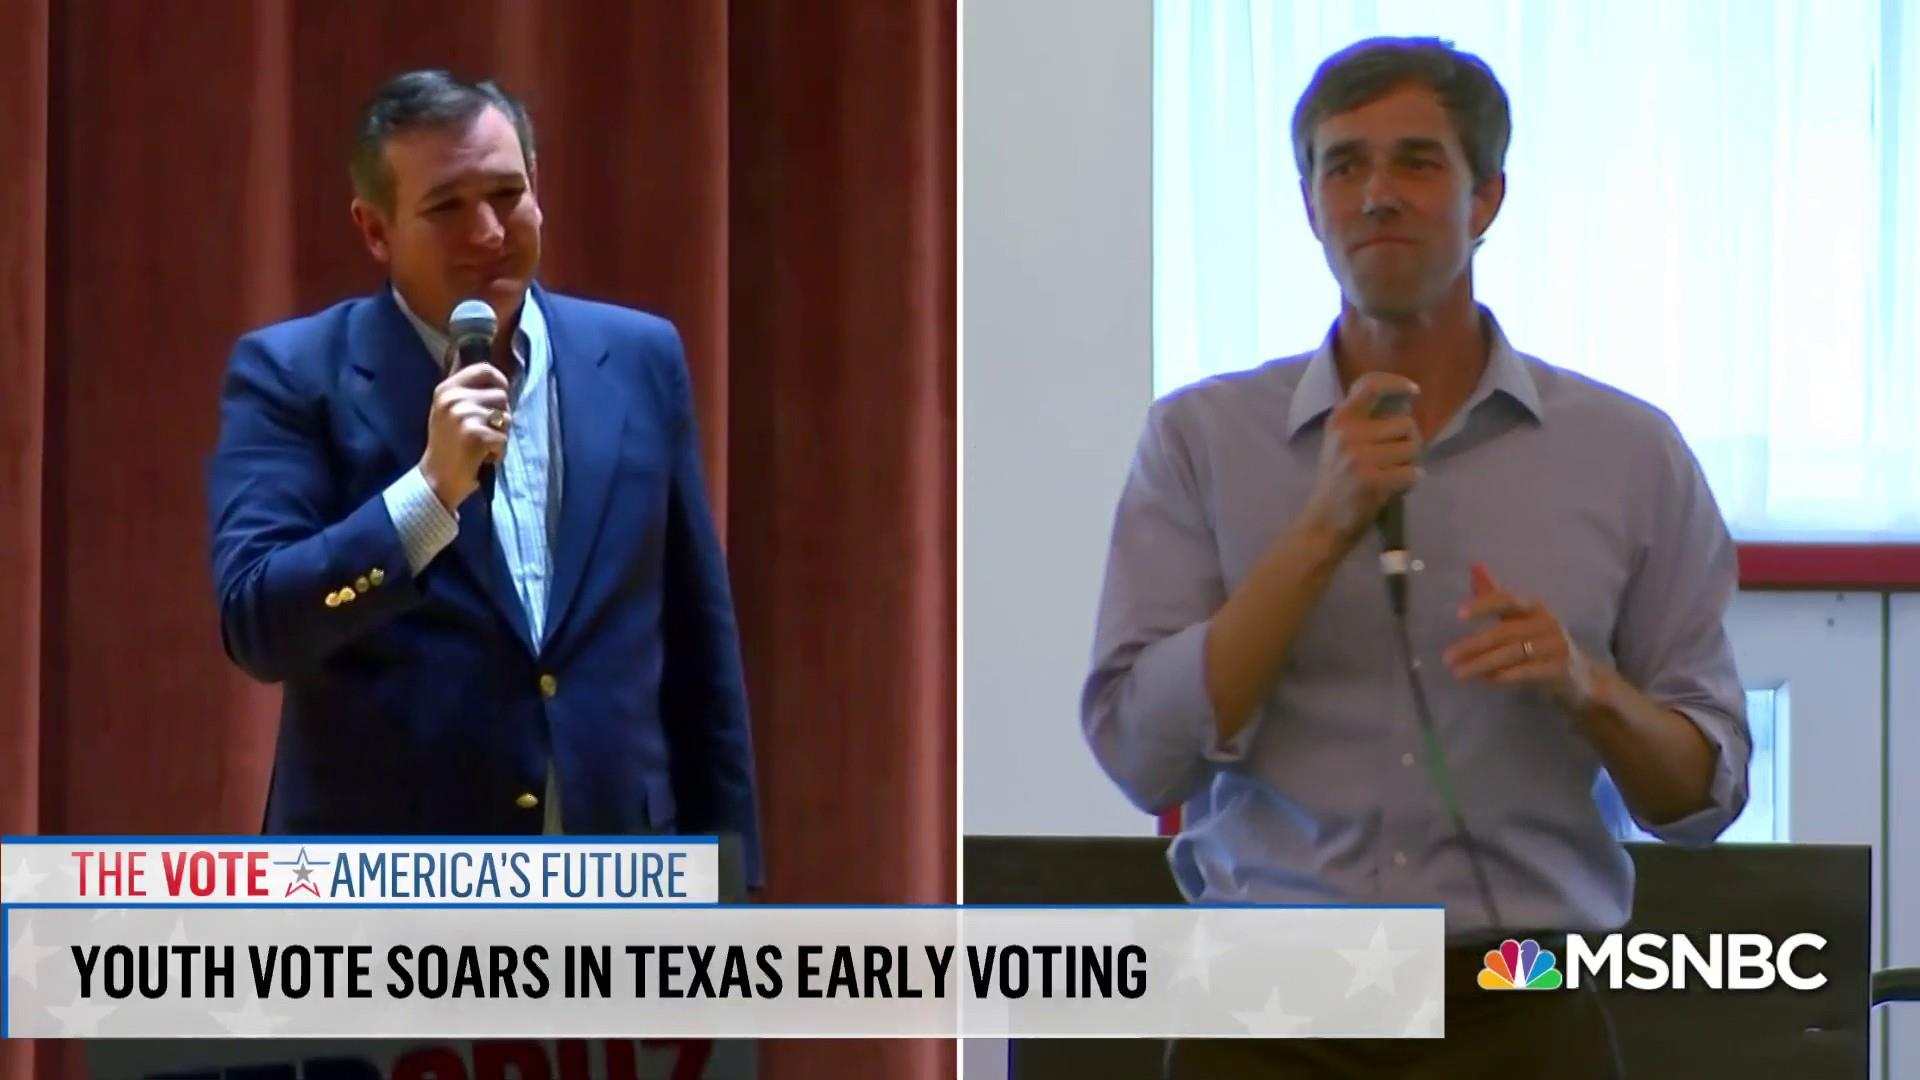 Tiffany Cross: I'm actually not counting out Beto O'Rourke